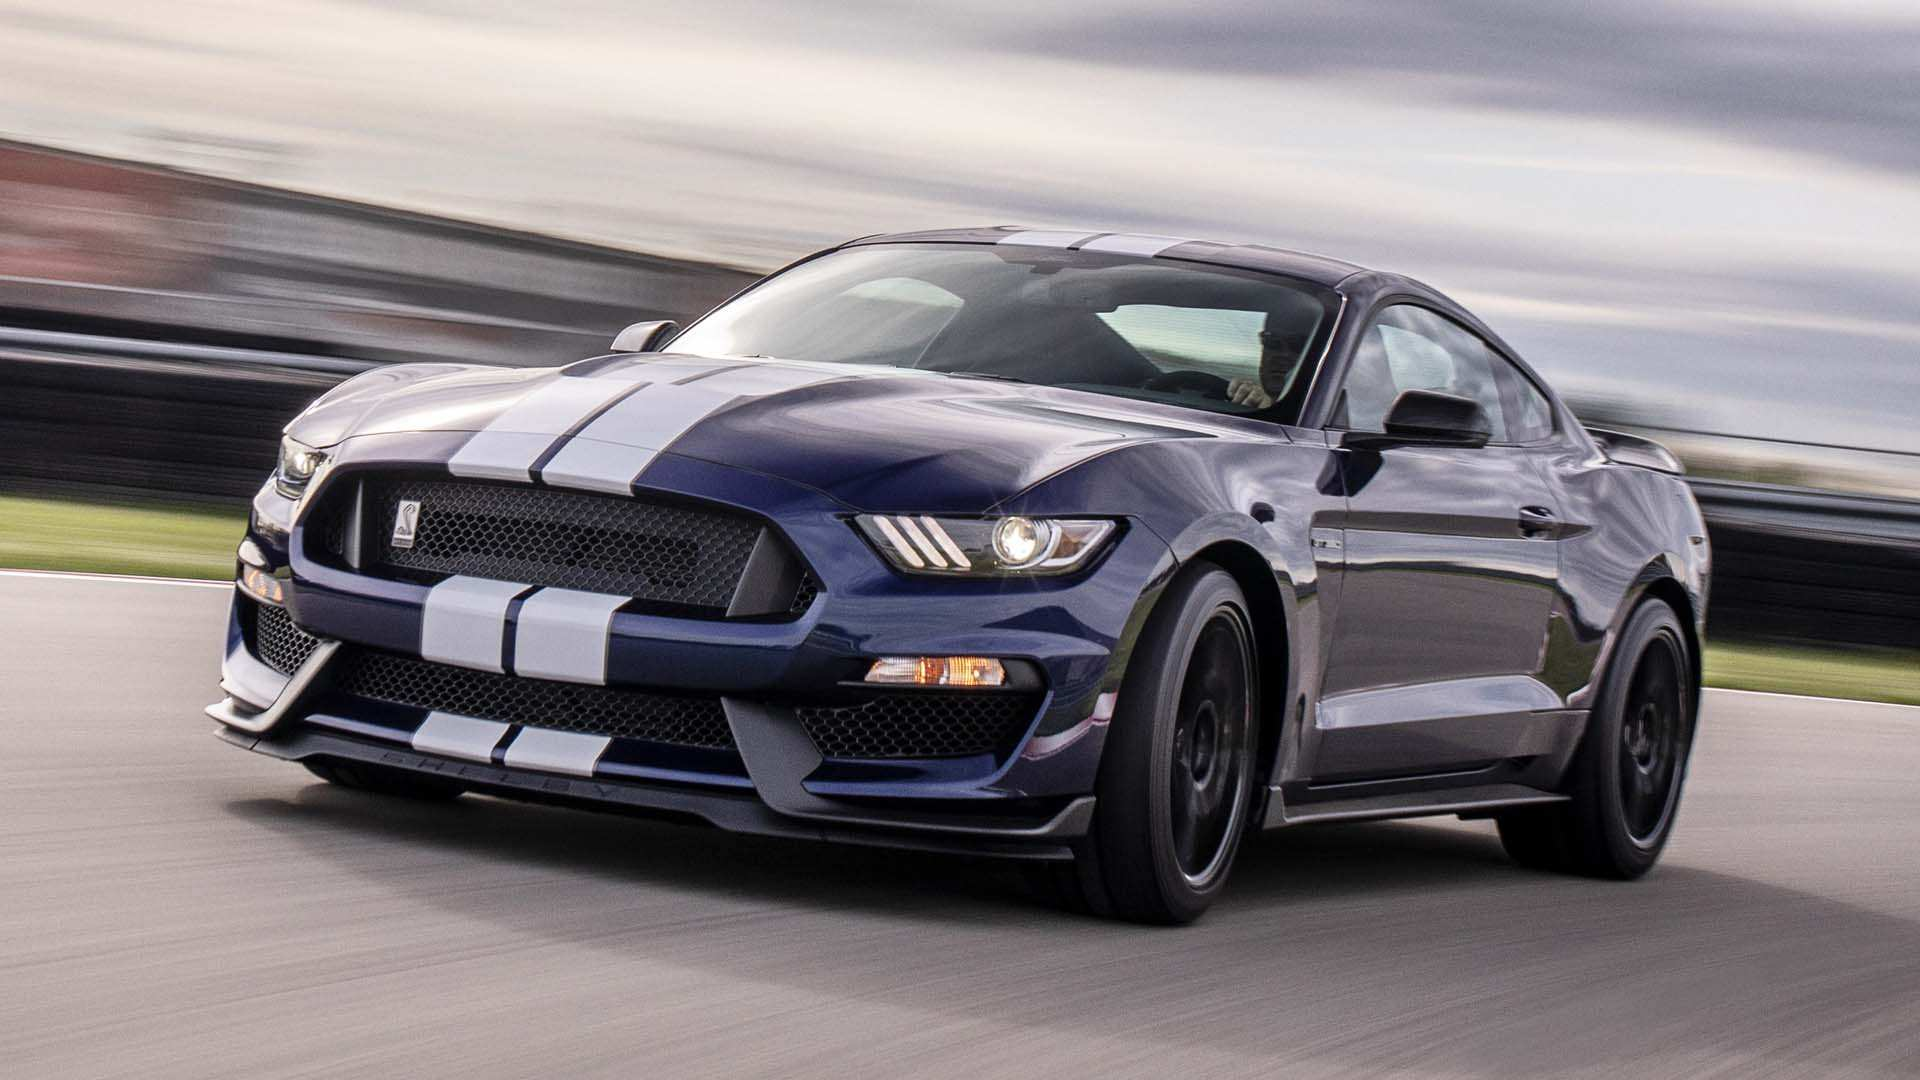 94 New 2020 Mustang Shelby Gt350 Release